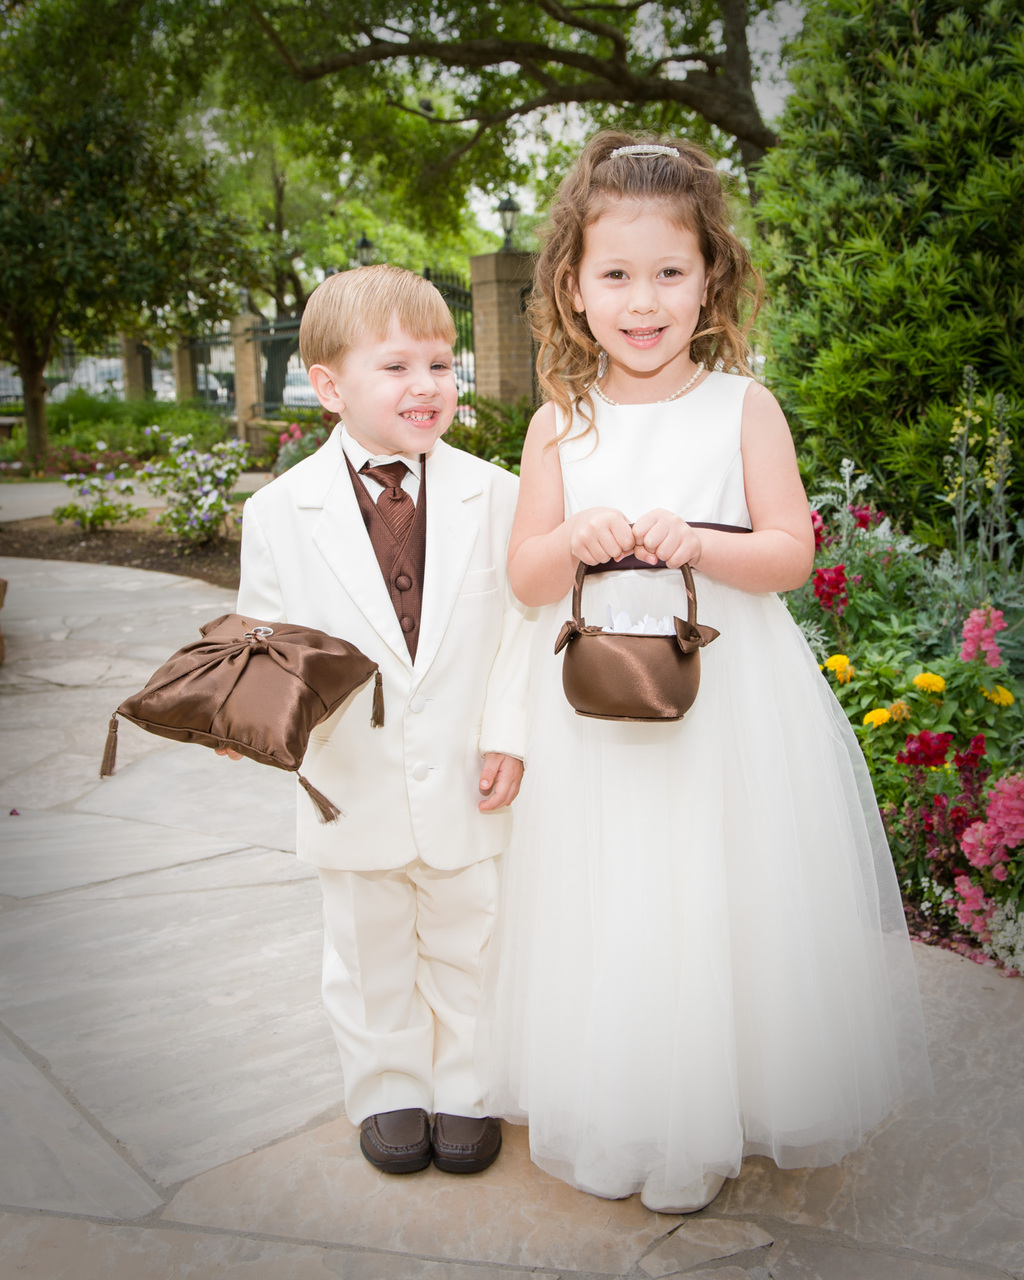 Outdoor Wedding Flower Girl